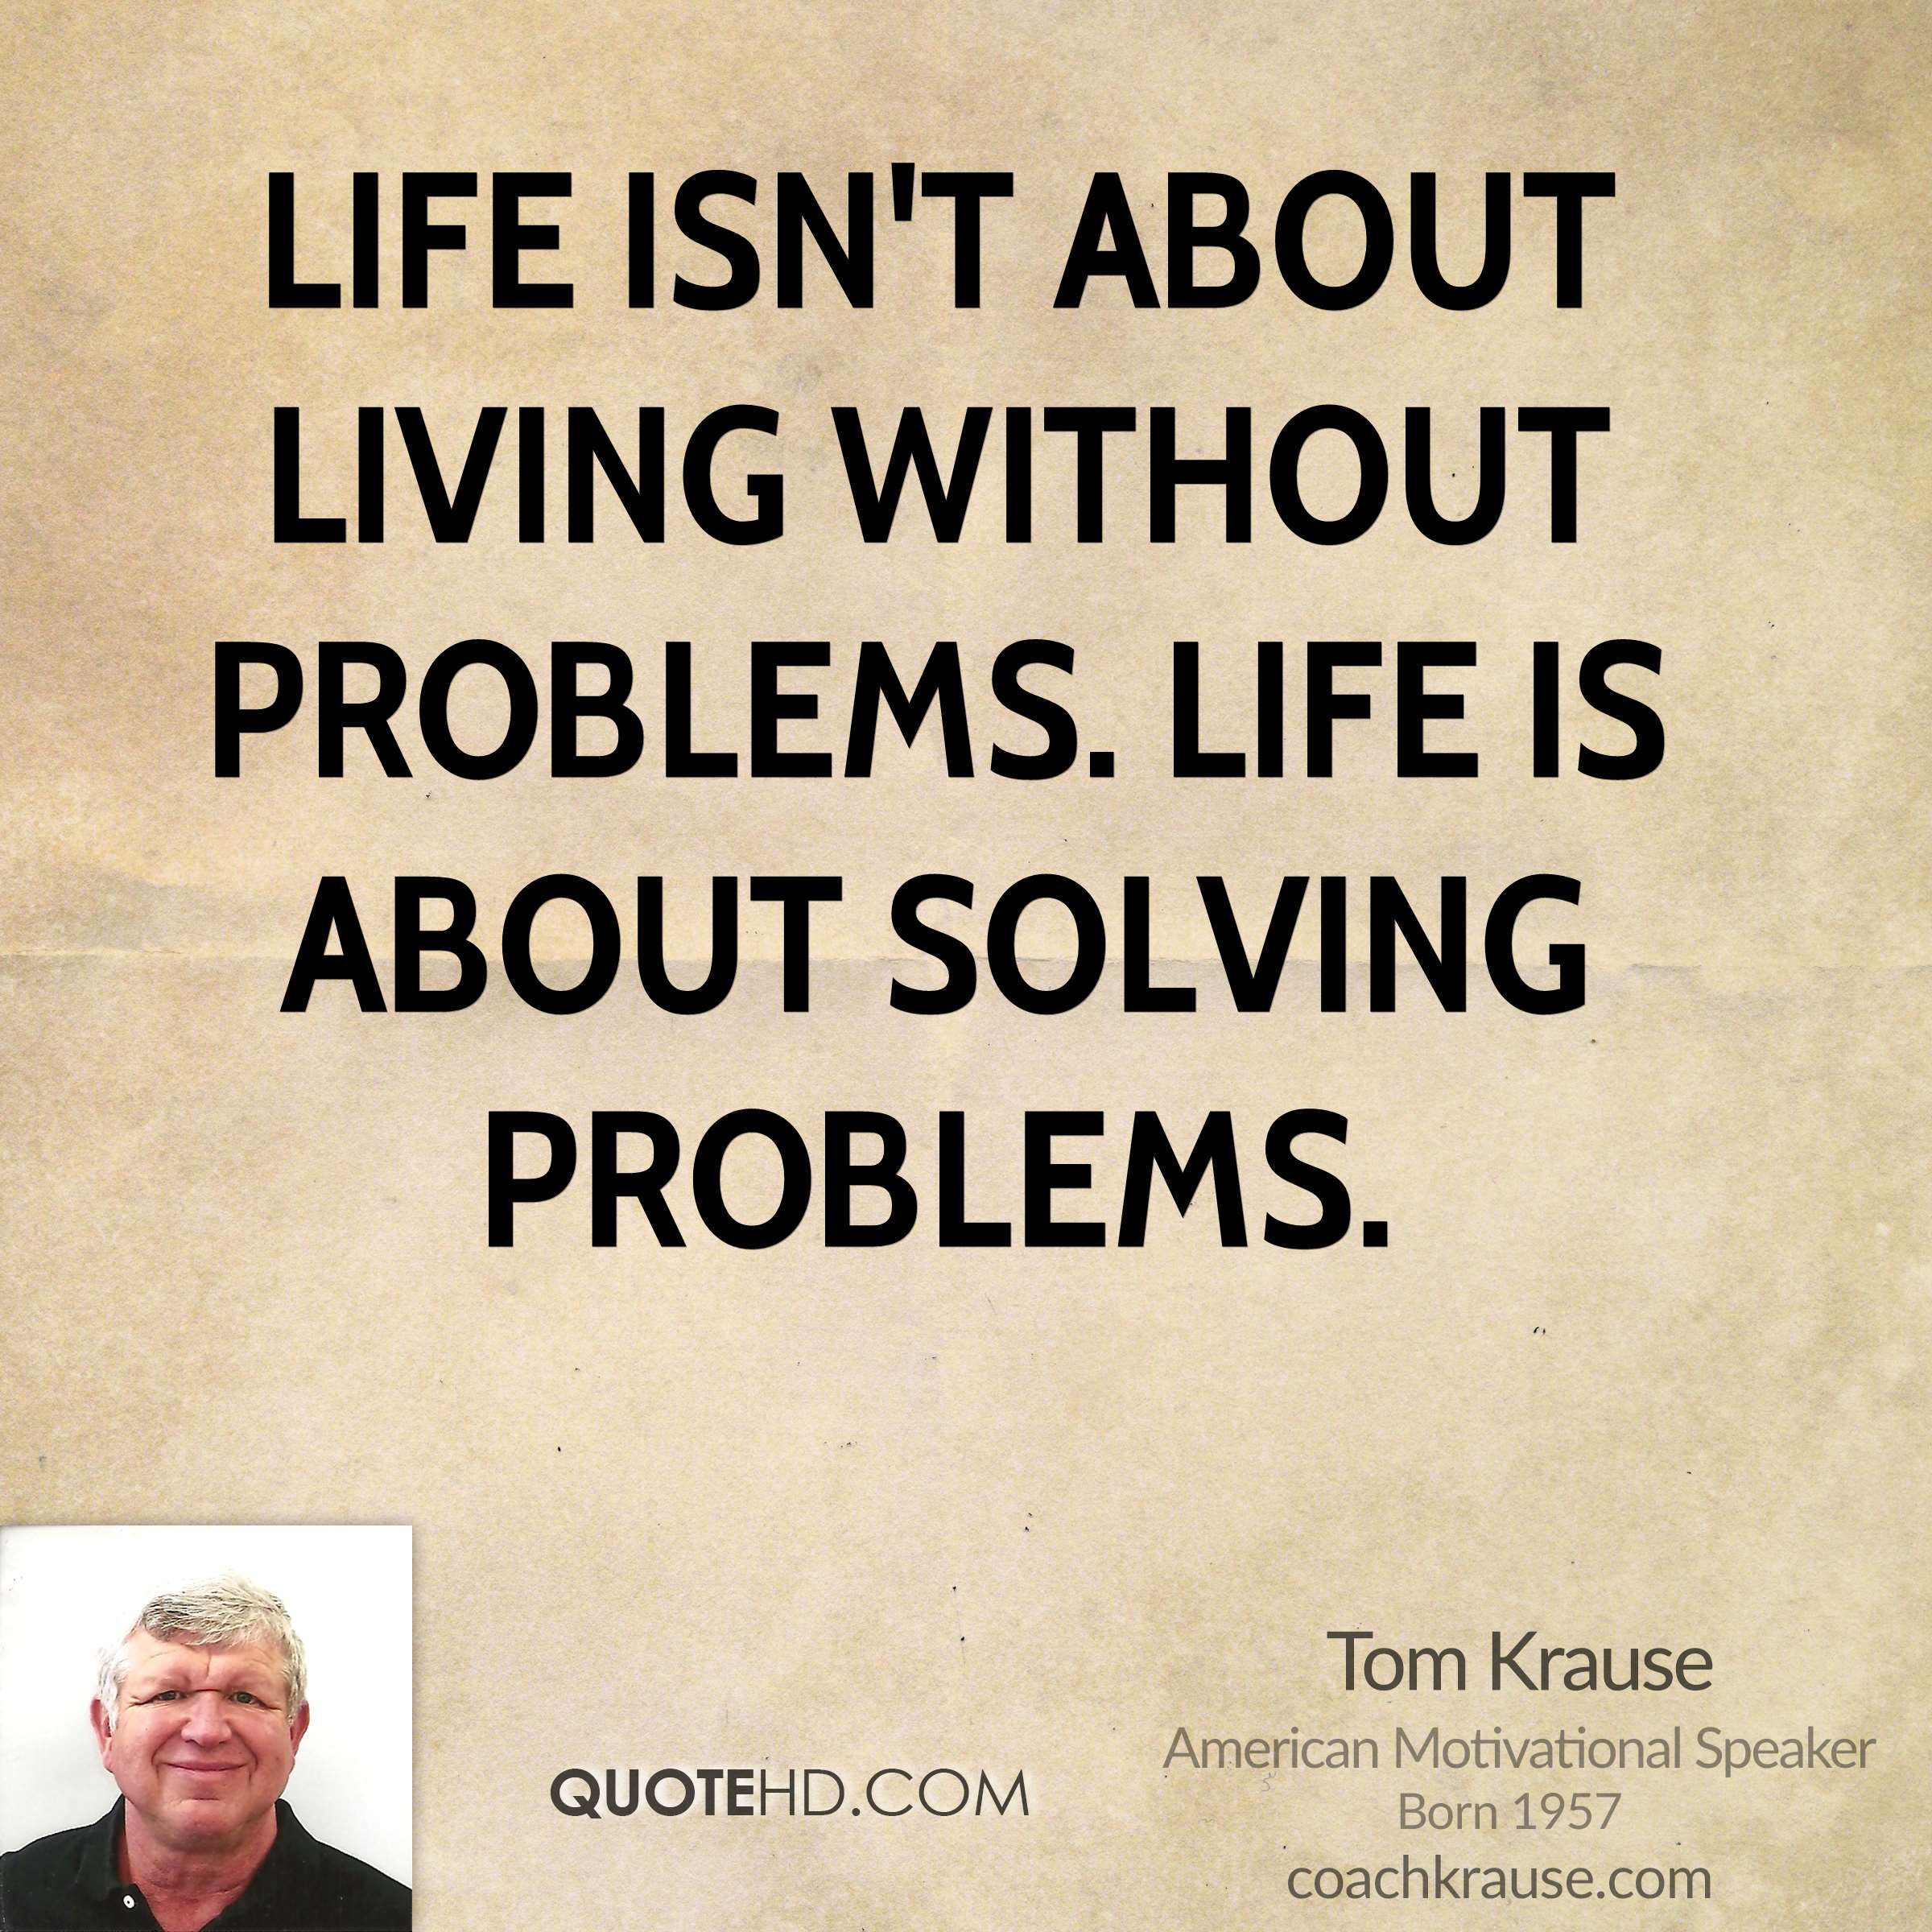 Life isn't about living without problems. Life is about solving problems.